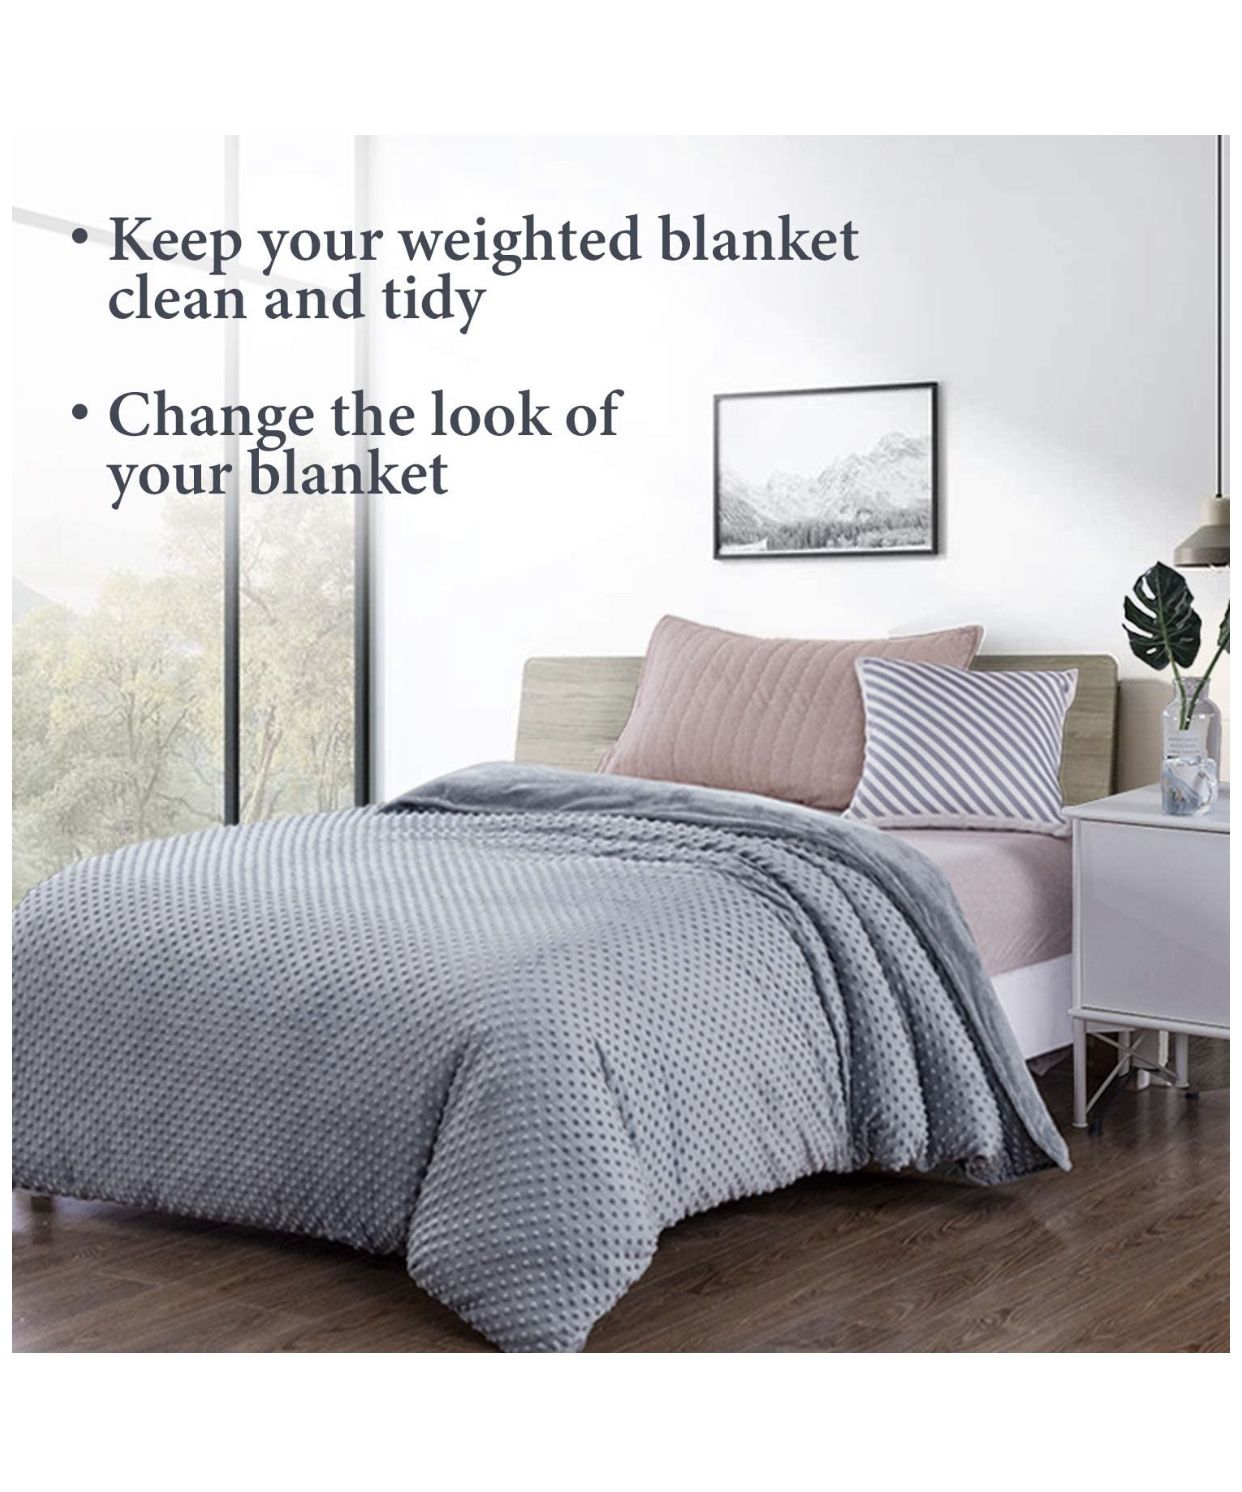 Duvet Cover for Weighted Blankets